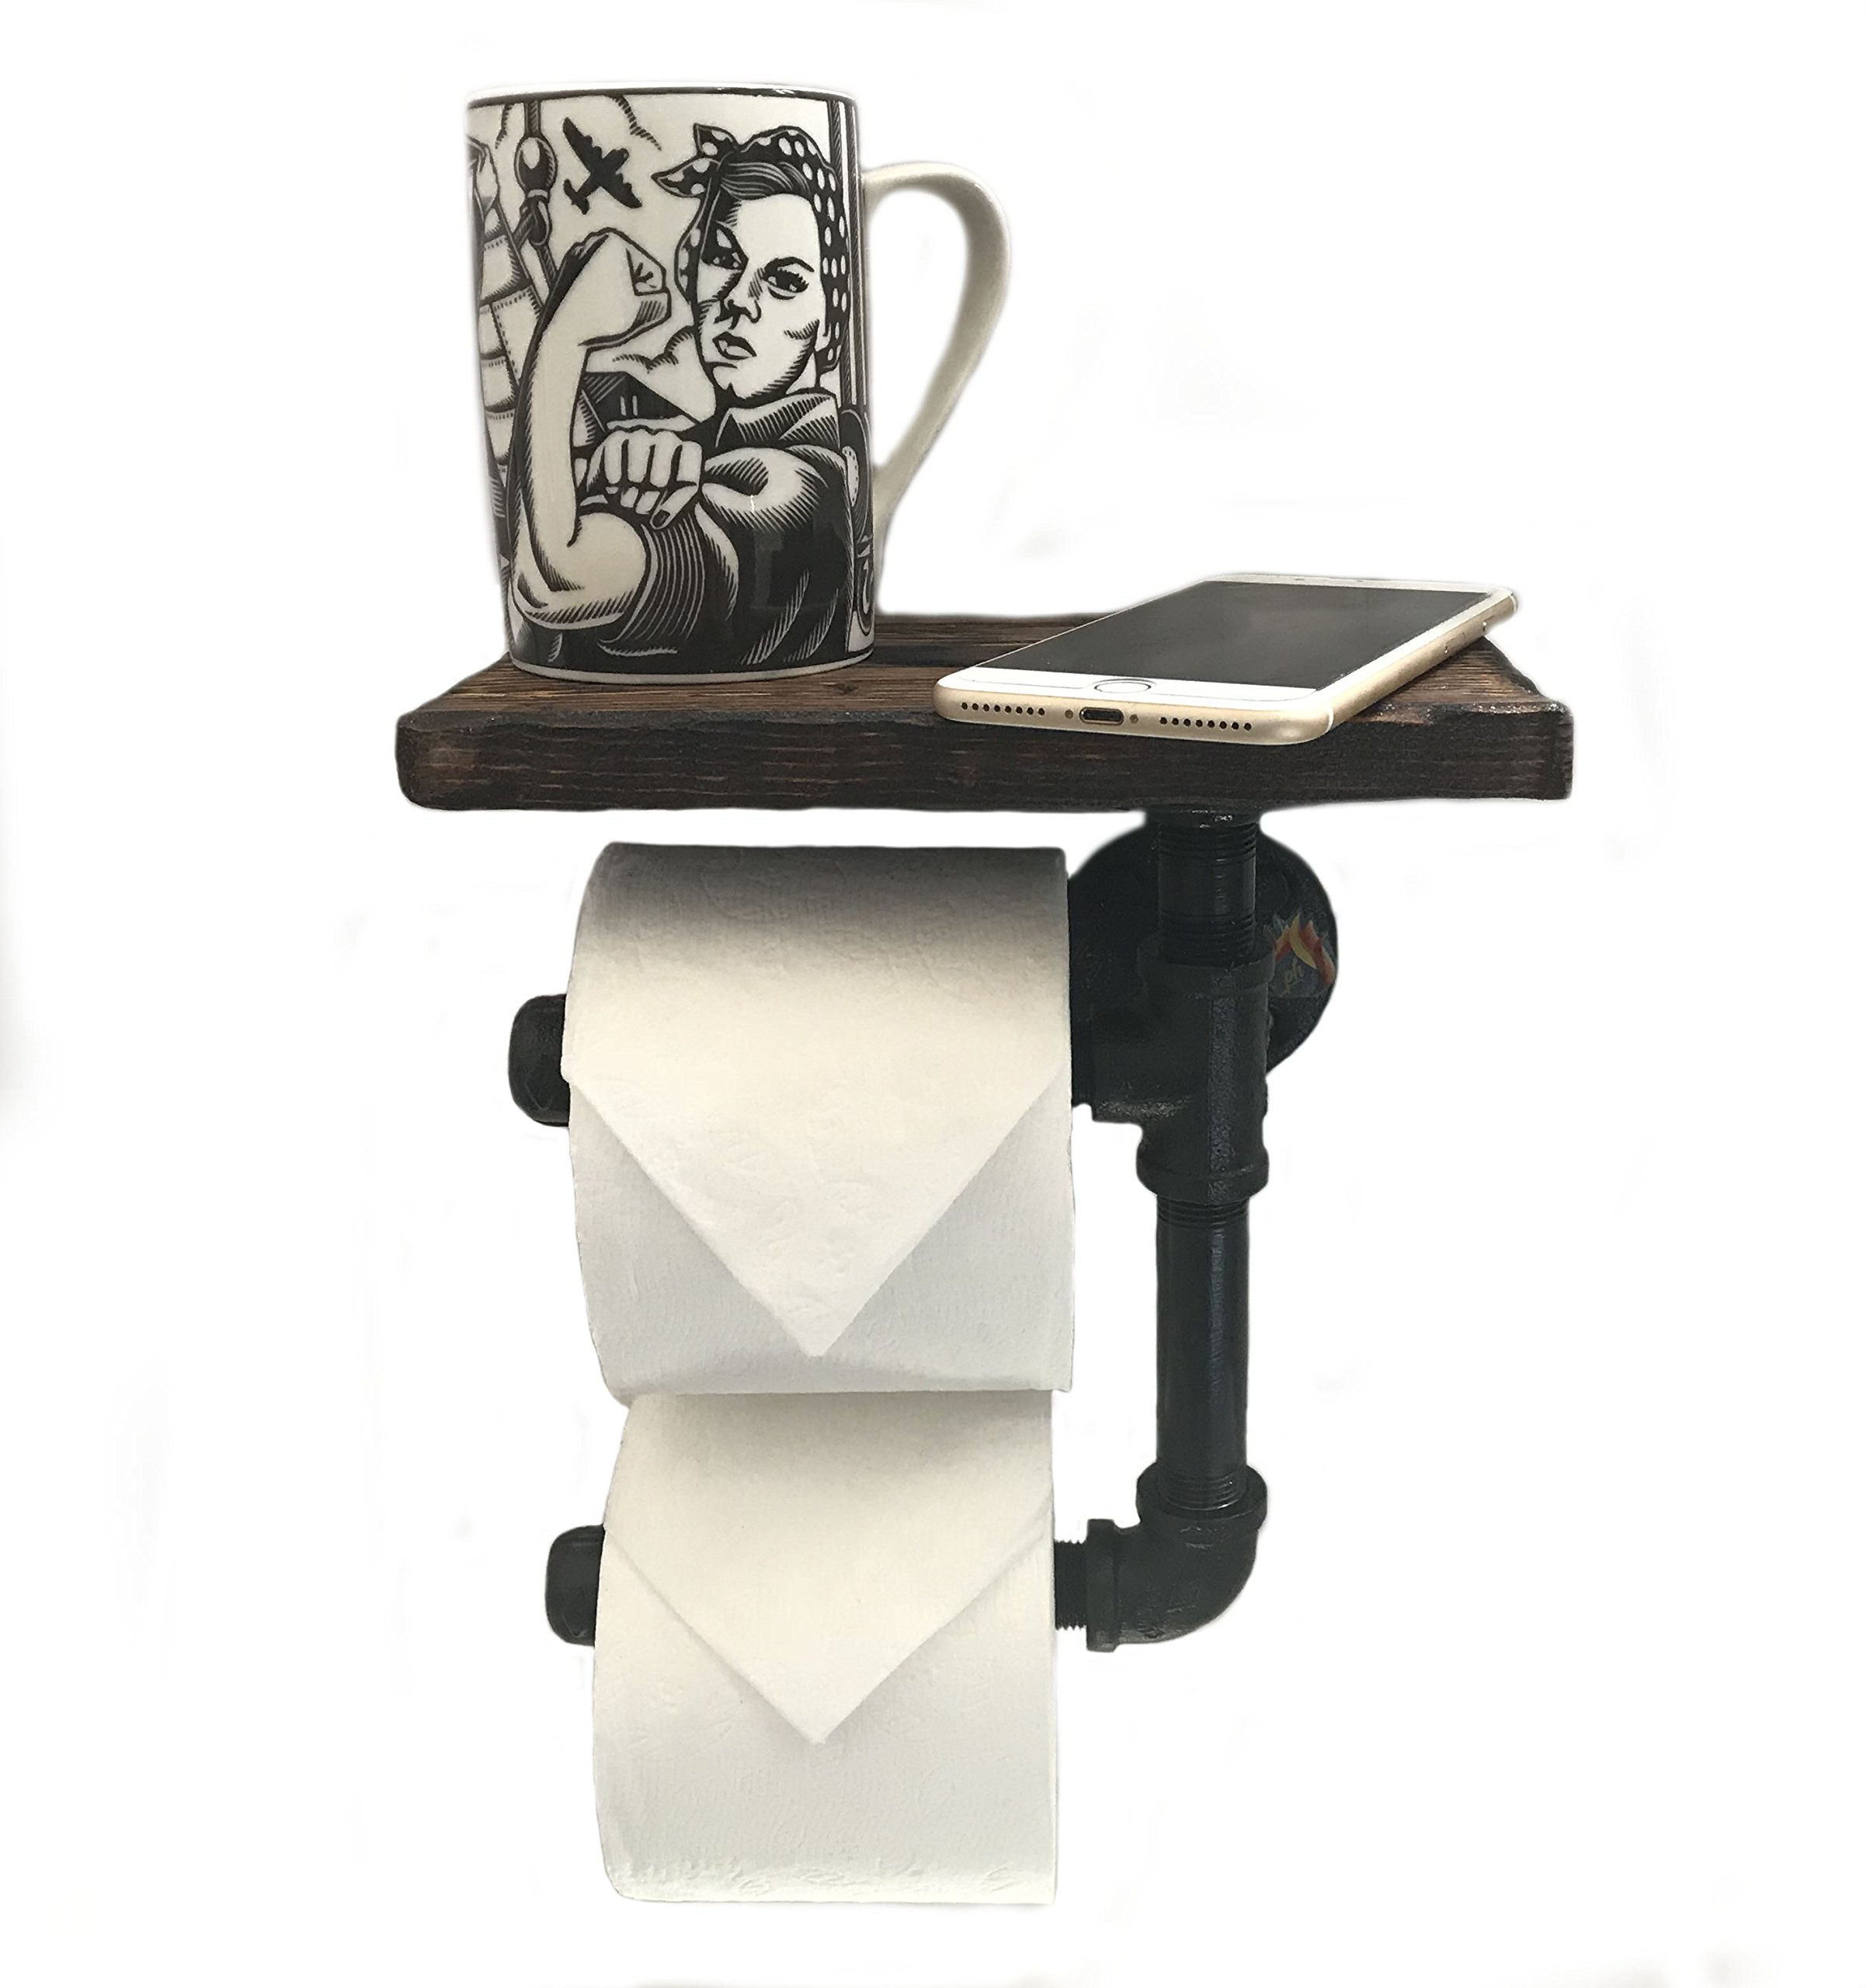 PH Toilet Paper Holder Shelf for Mobile Phone Storage in Bathroom with 5 Color Options